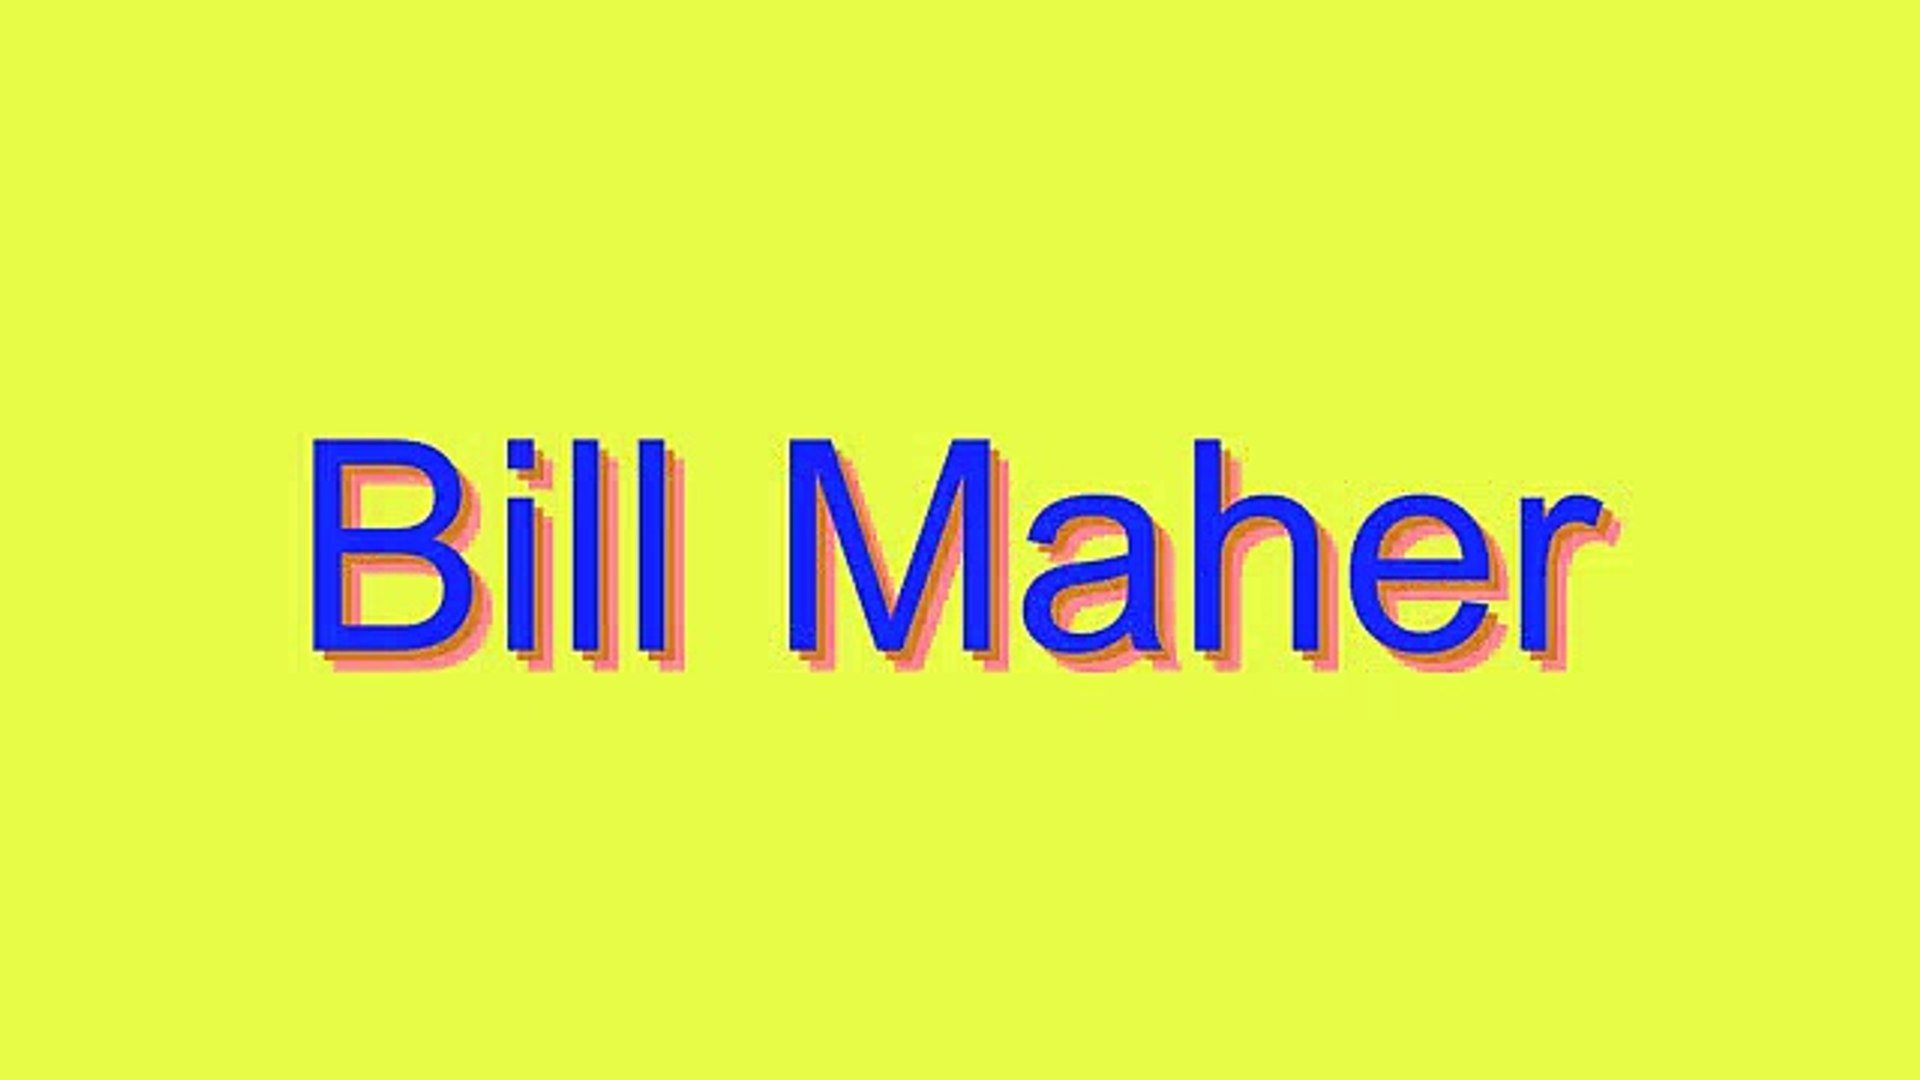 How to Pronounce Bill Maher